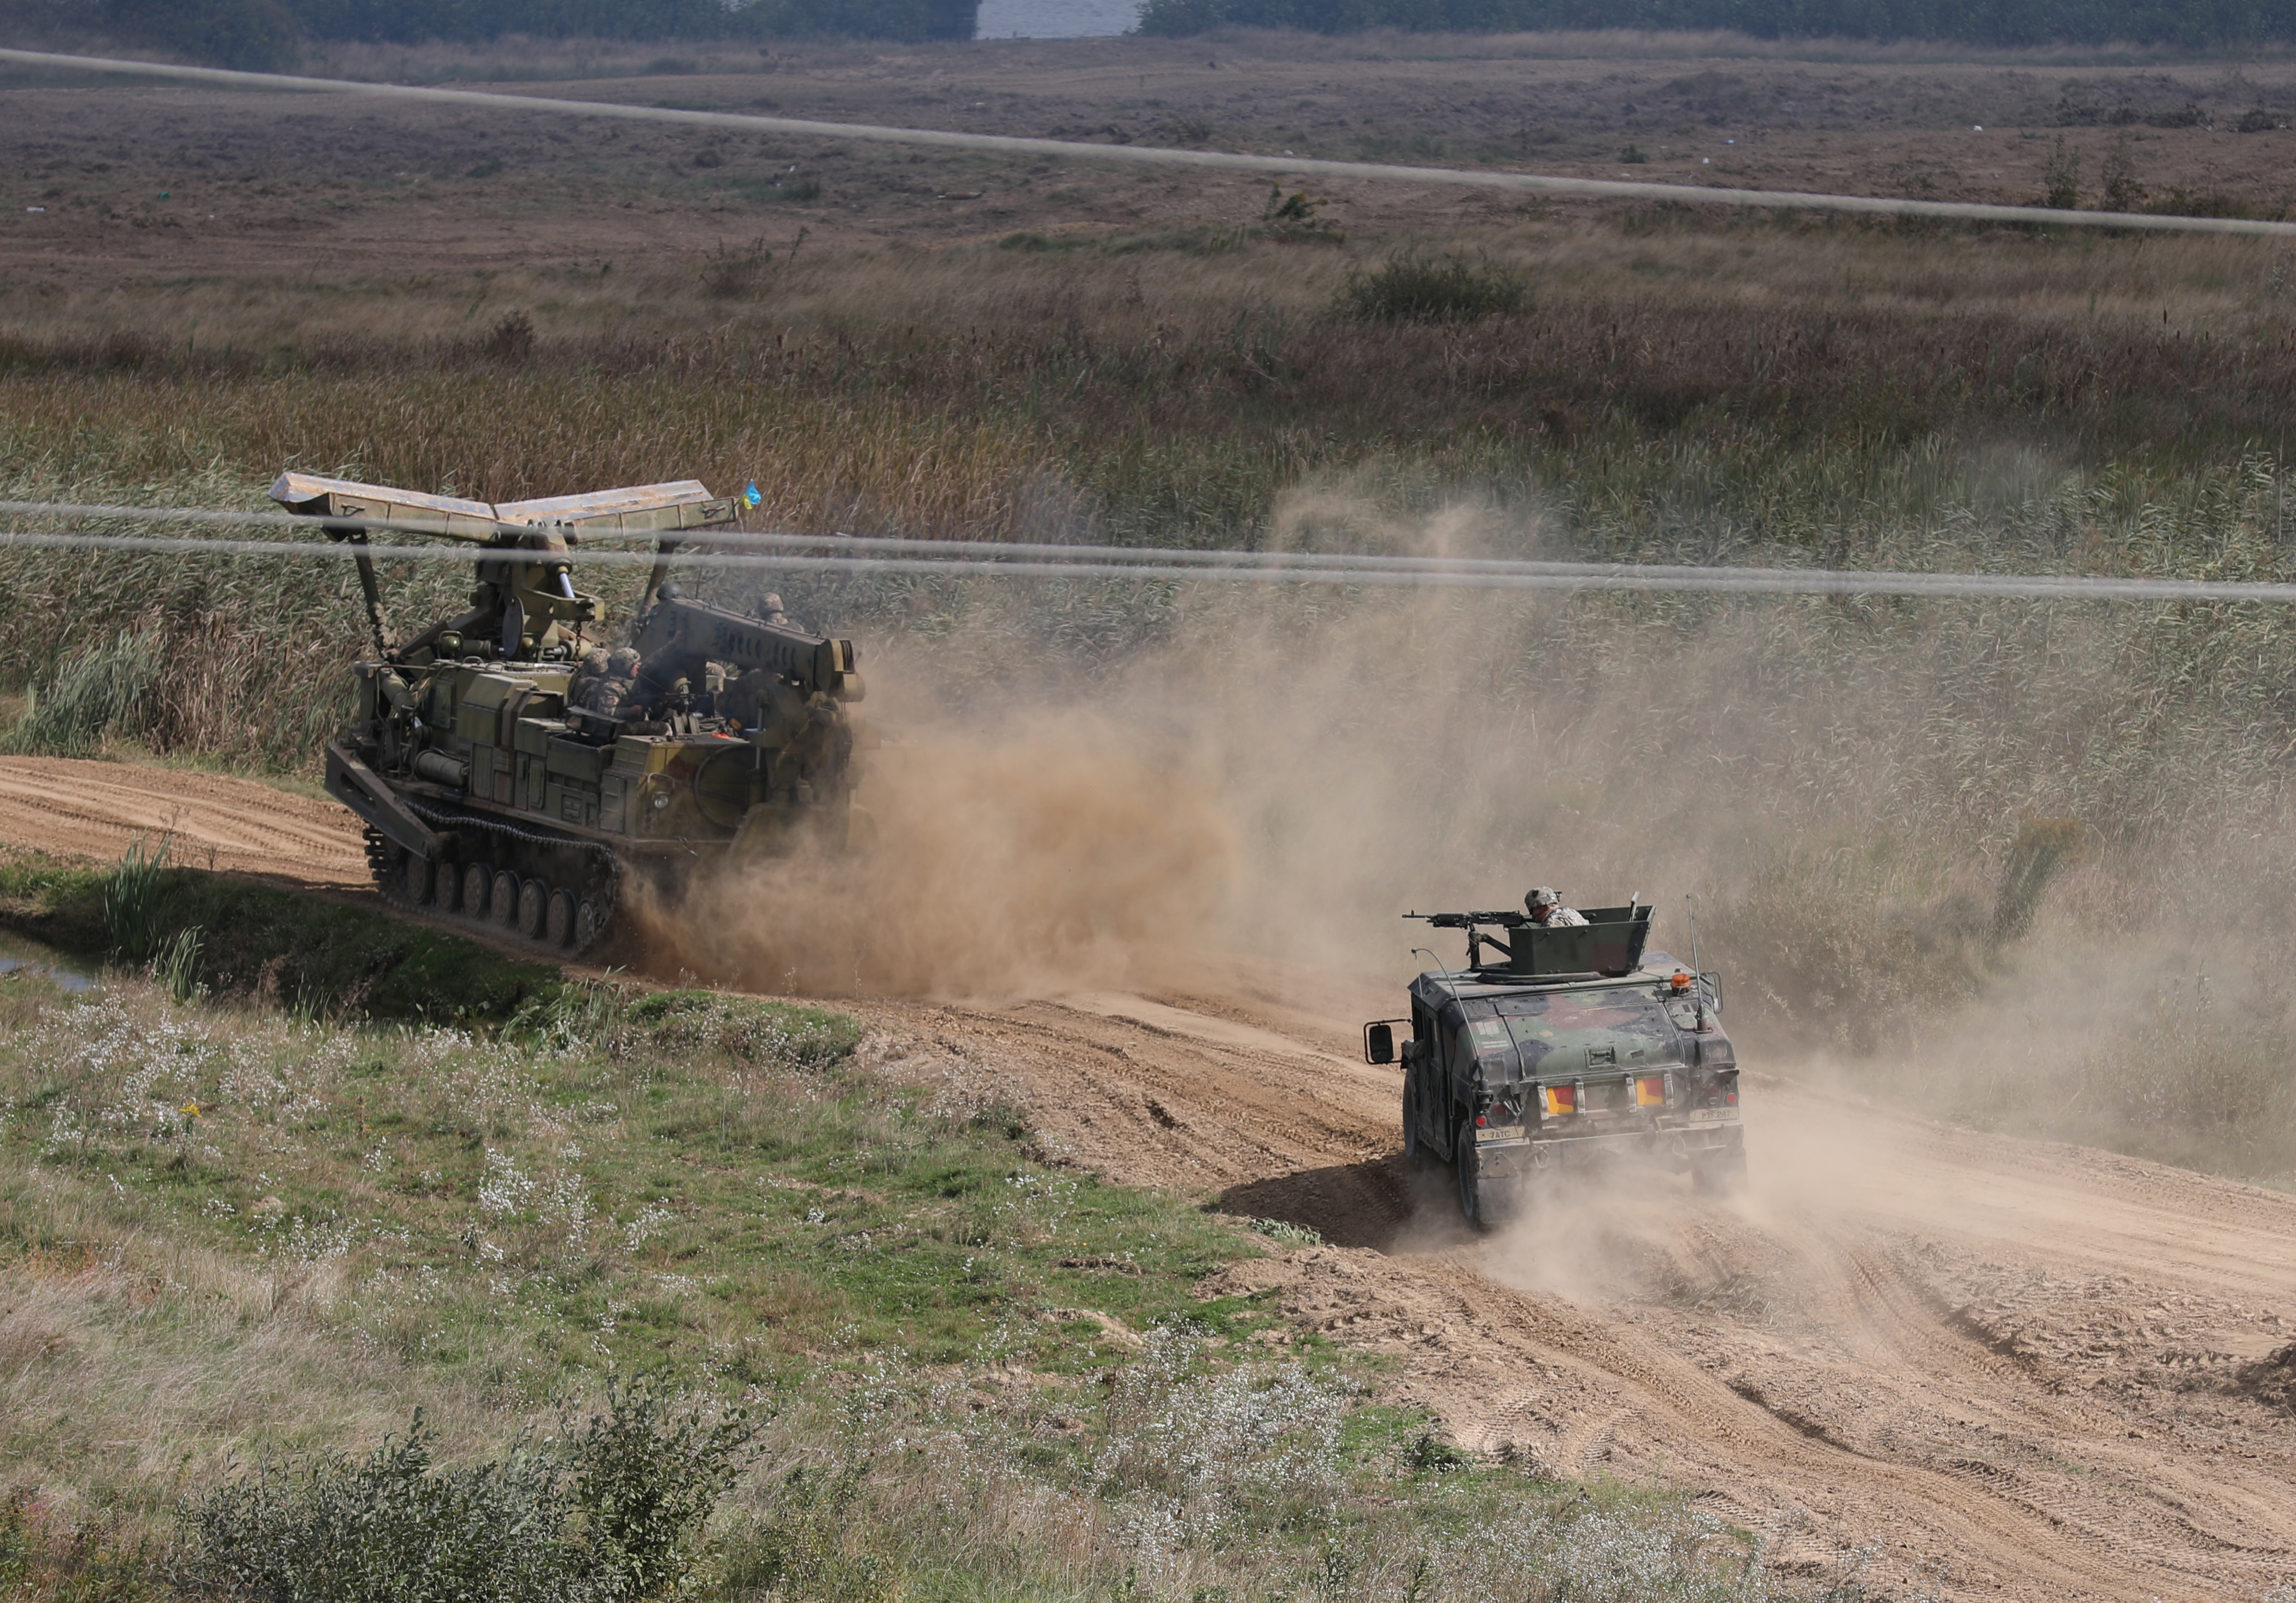 A high mobility multi-wheeled vehicle from the 101st Airborne Division (Air Assault) provides fire support for a Ukraine engineer vehicle during a water gap crossing demonstration as part of Rapid Trident 2019 in Yavoriv, Ukraine, Sept. 20, 2019. RT19 is an annual, multinational exercise occurring from Sept. 13-28, 2019, which involves approximately 3,700 personnel from 14 nations, that supports joint combined interoperability among partner militaries of Ukraine and the United States, as well as Partnership for Peace nations and NATO allies. (U.S. Army photo by Sgt. Kyle Larsen.)